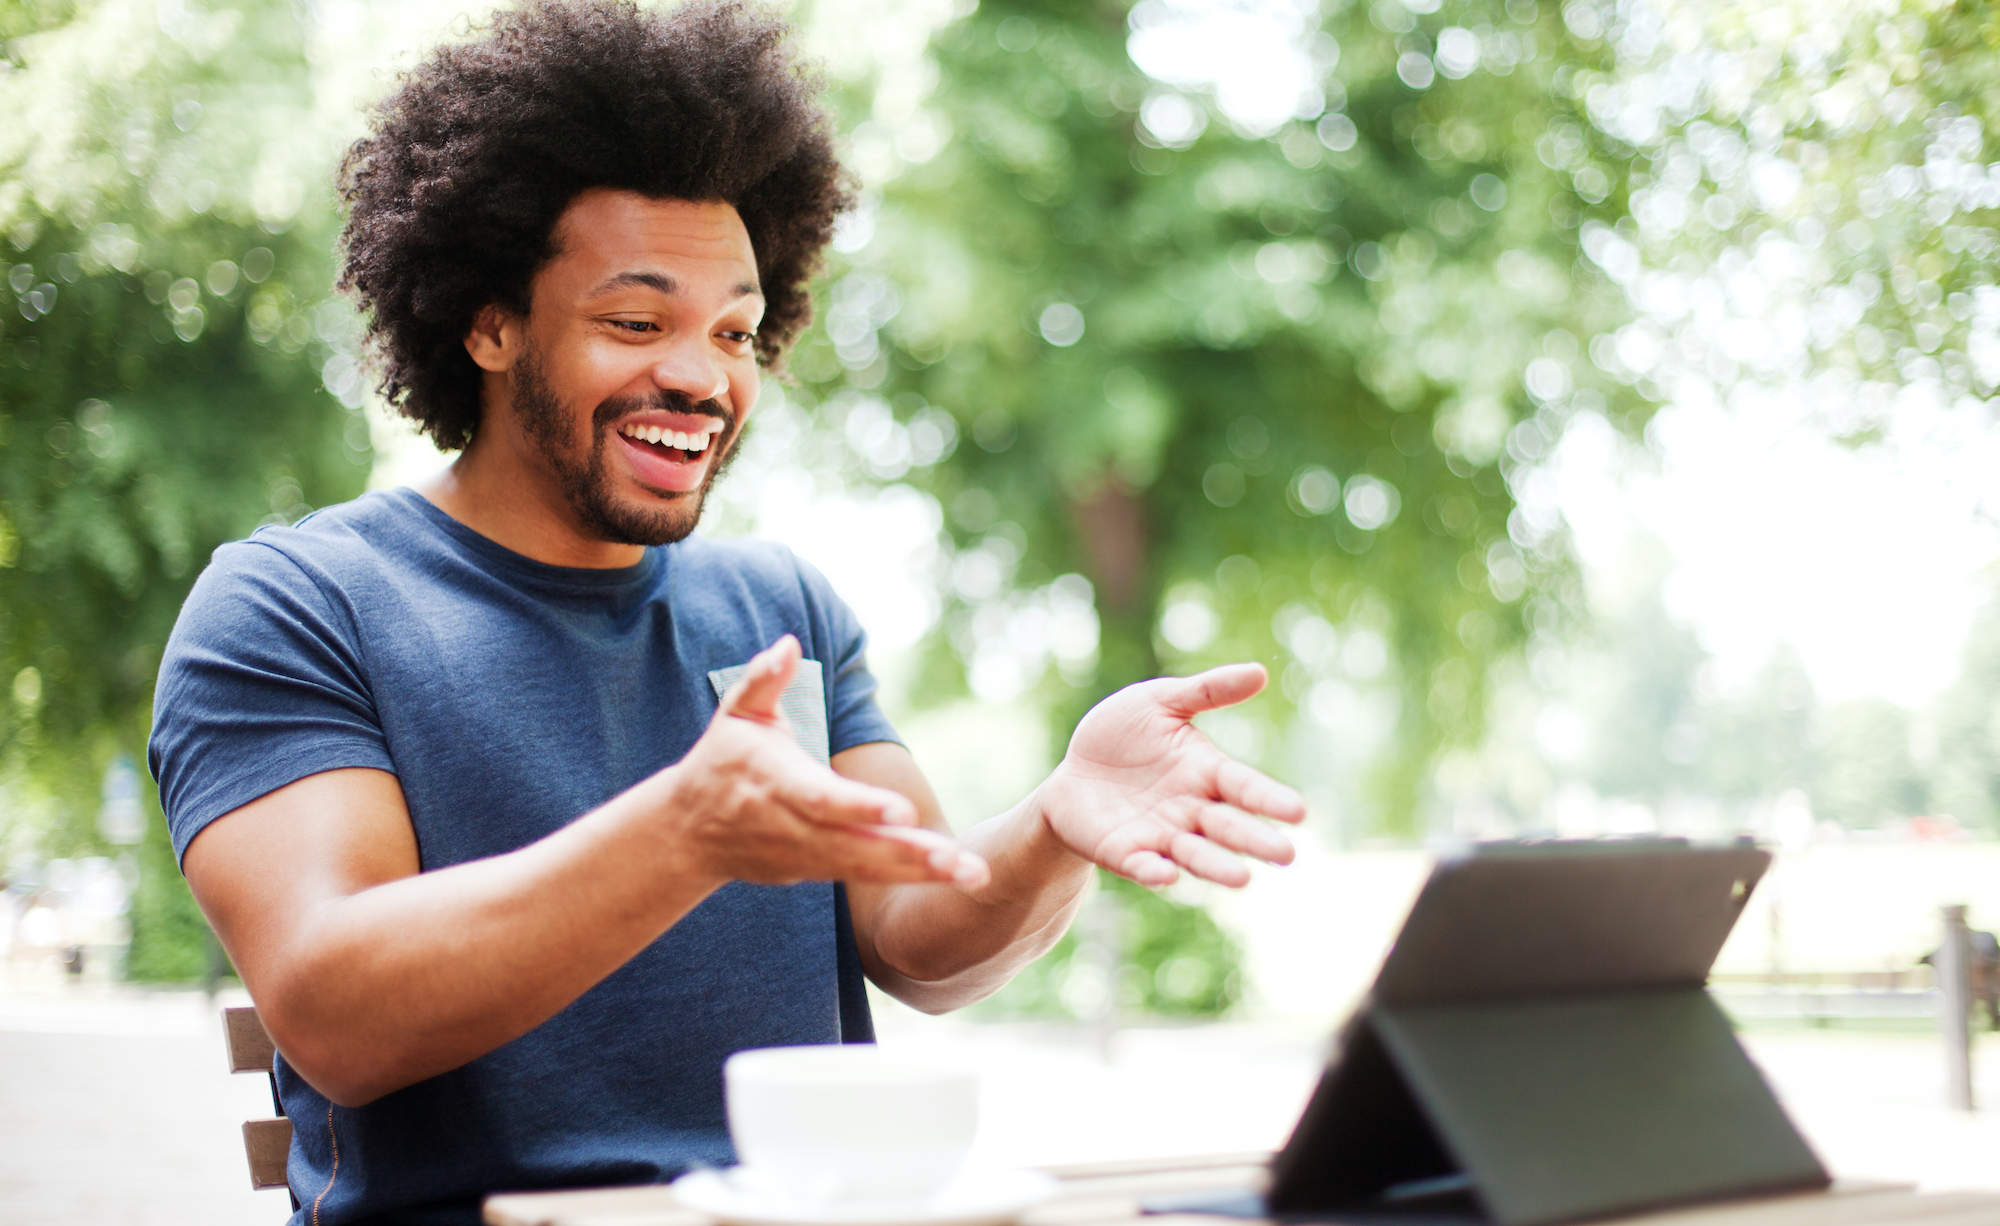 Man laughing outside looking at tablet during virtual meeting